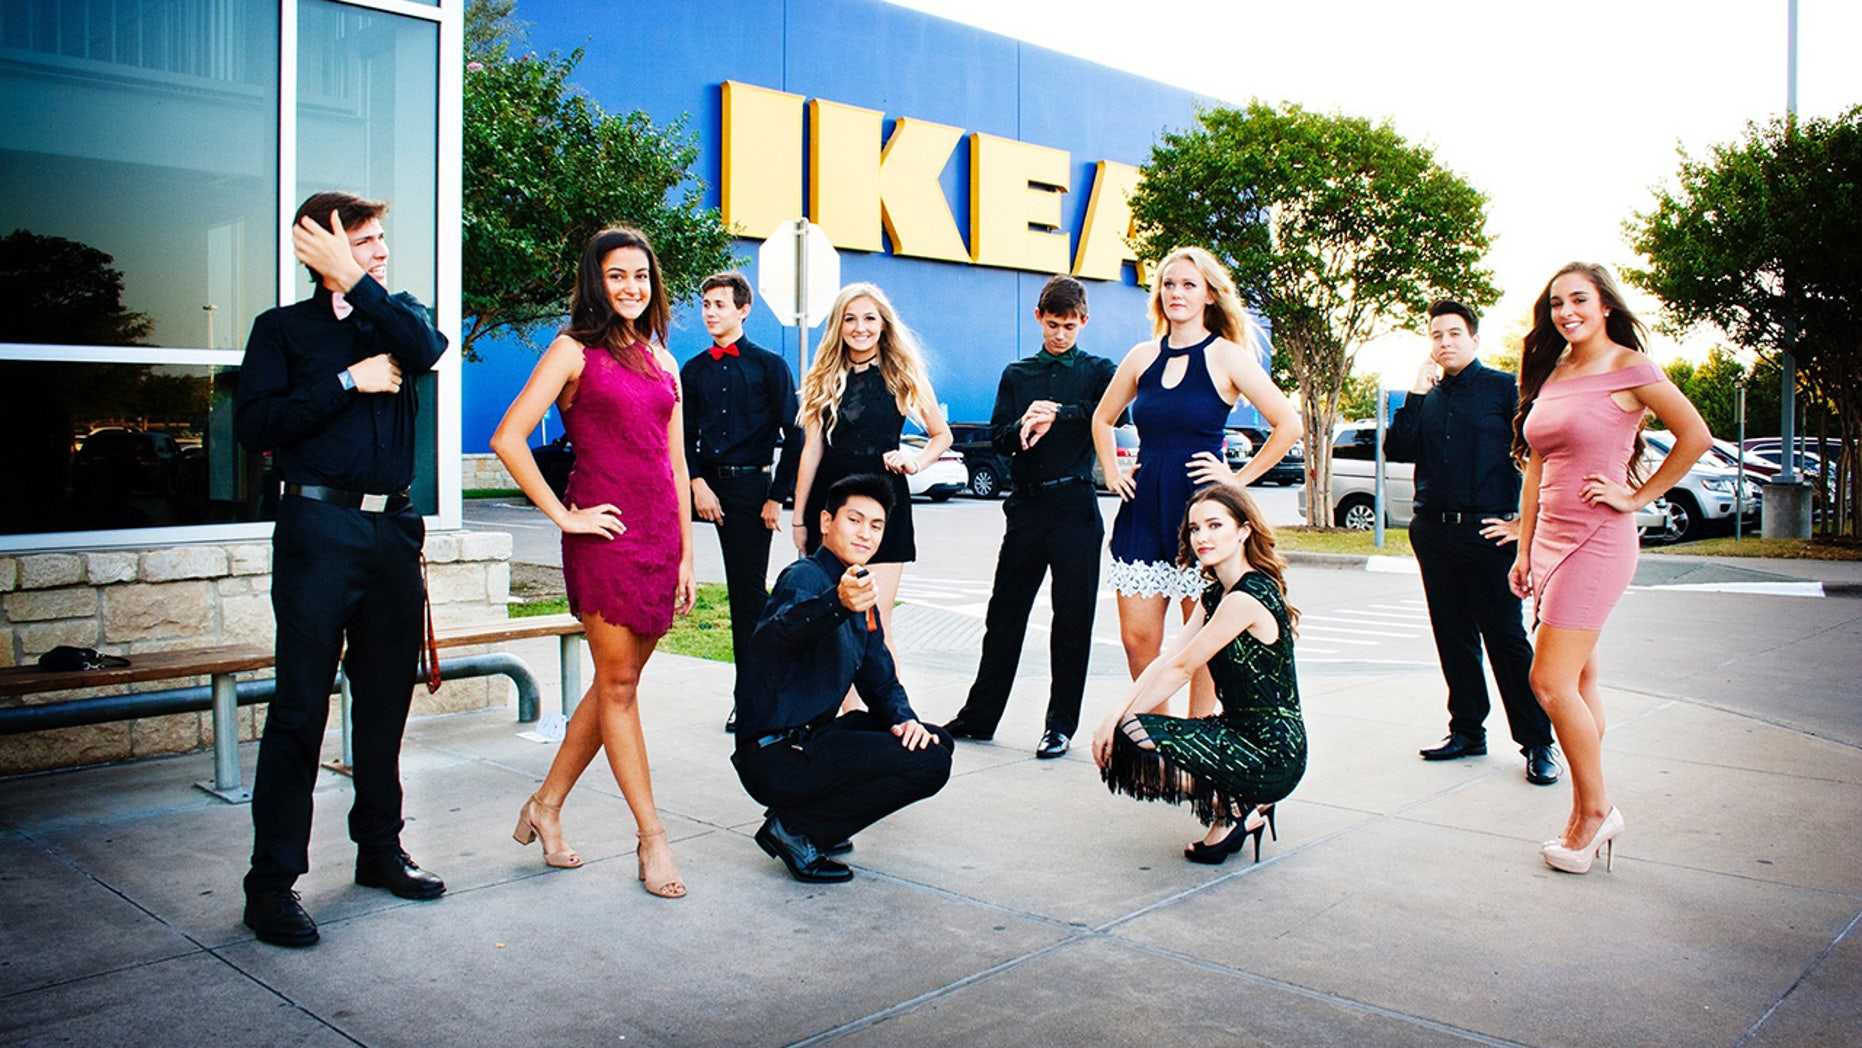 Texas teens went to IKEA for homecoming photos -- and the internet loves it.